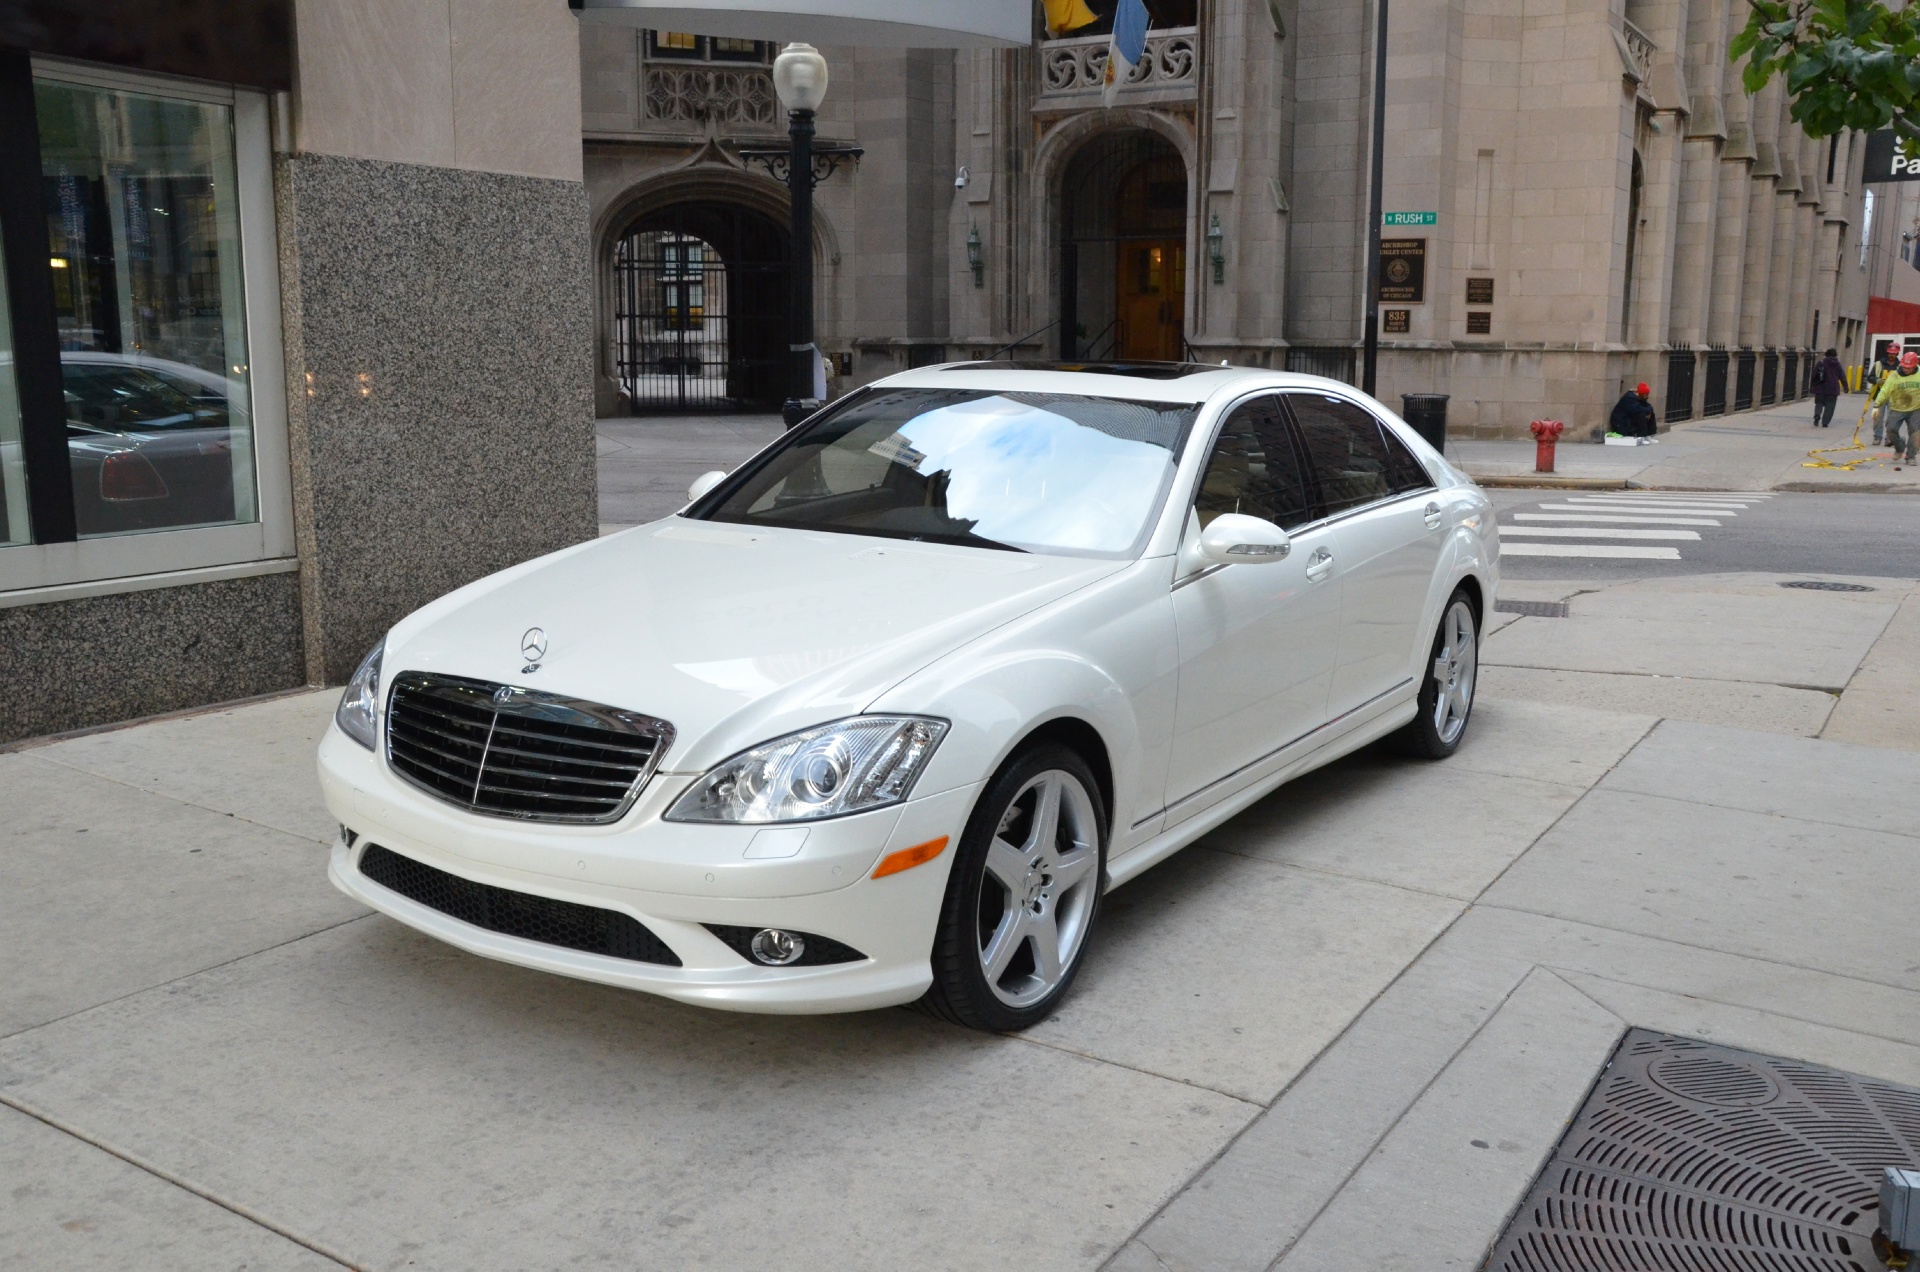 2009 mercedes benz s class s550 4matic used bentley for 2009 mercedes benz s class s550 4matic